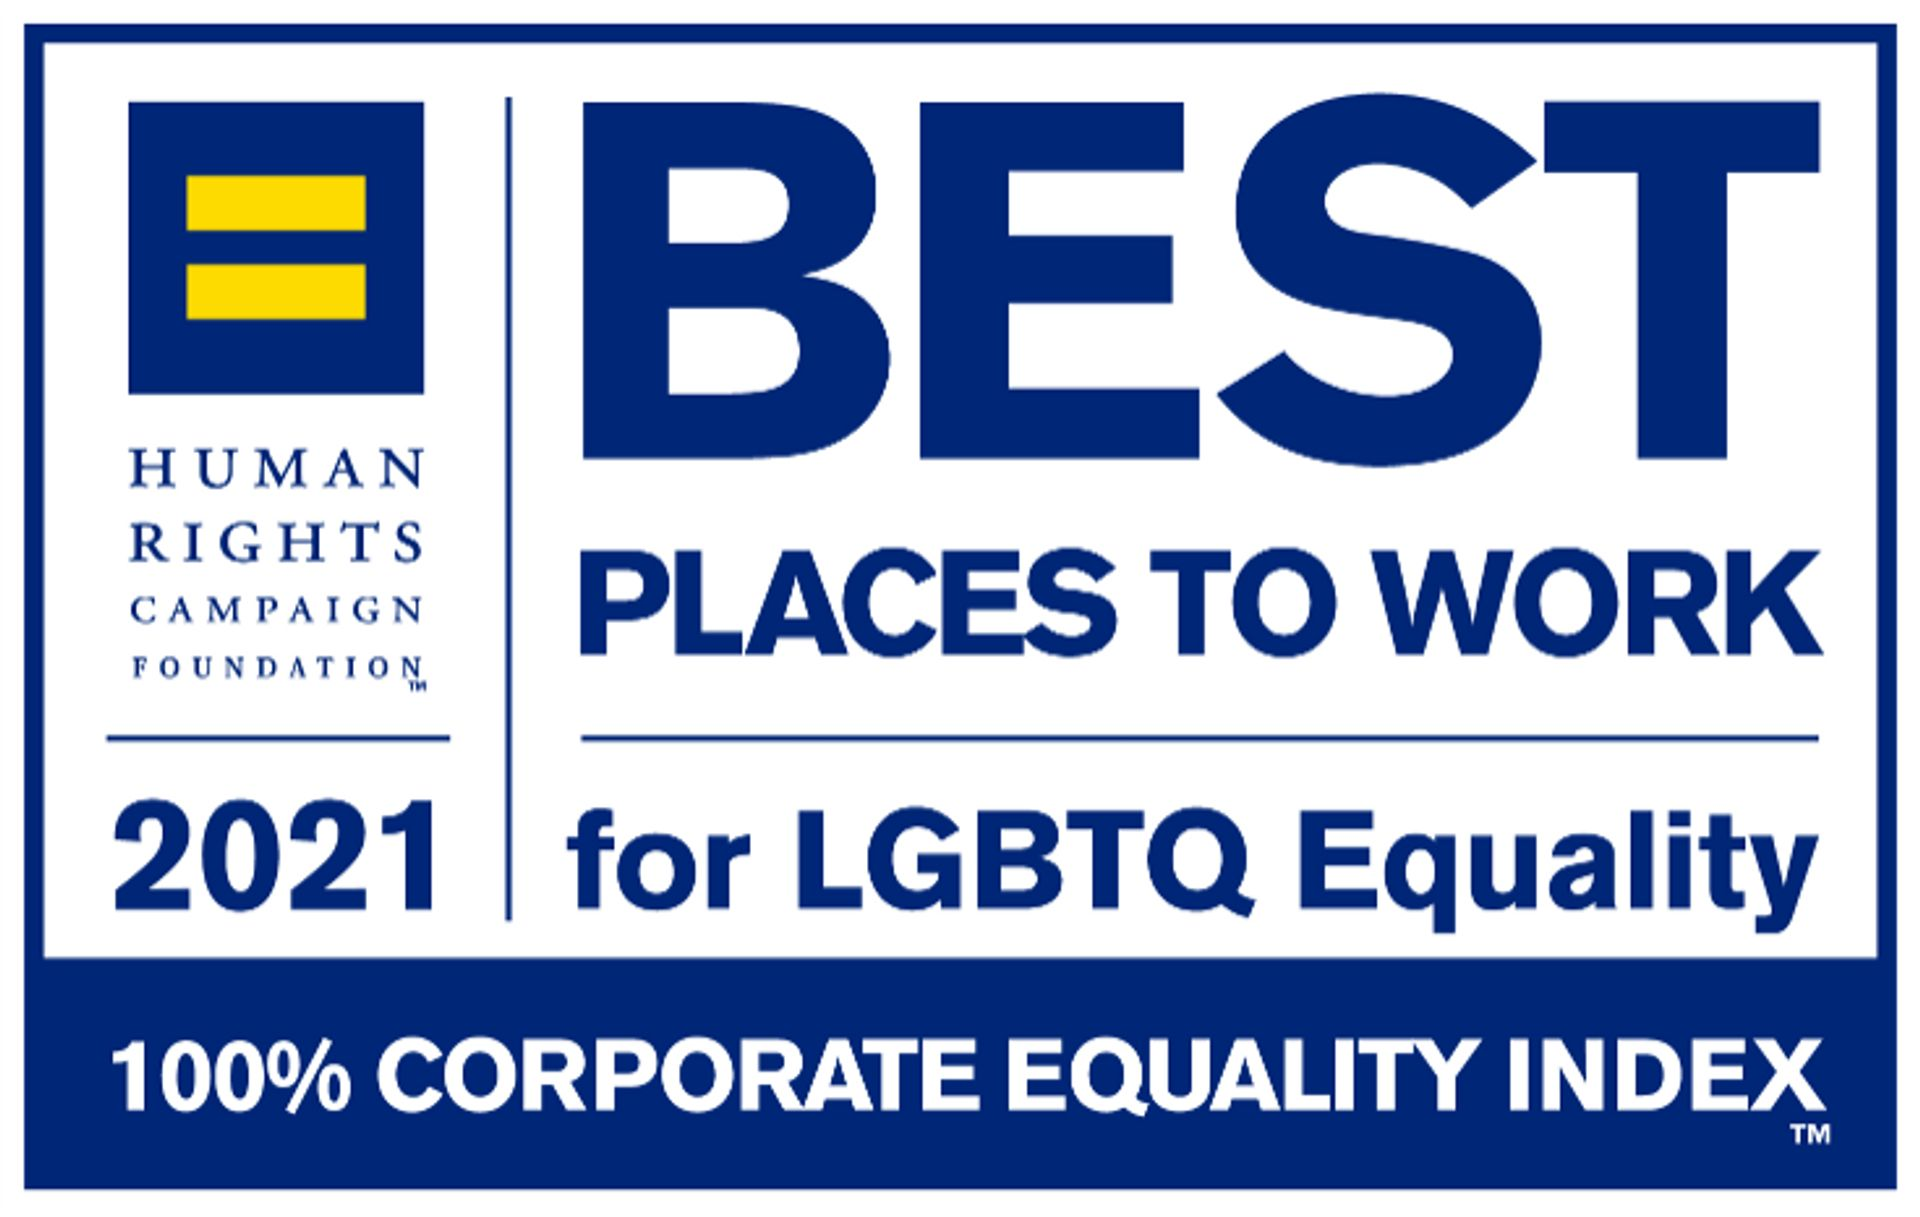 Human Rights Campaign Foundation 2021 Best Places to Work for LGBTQ Equality logo